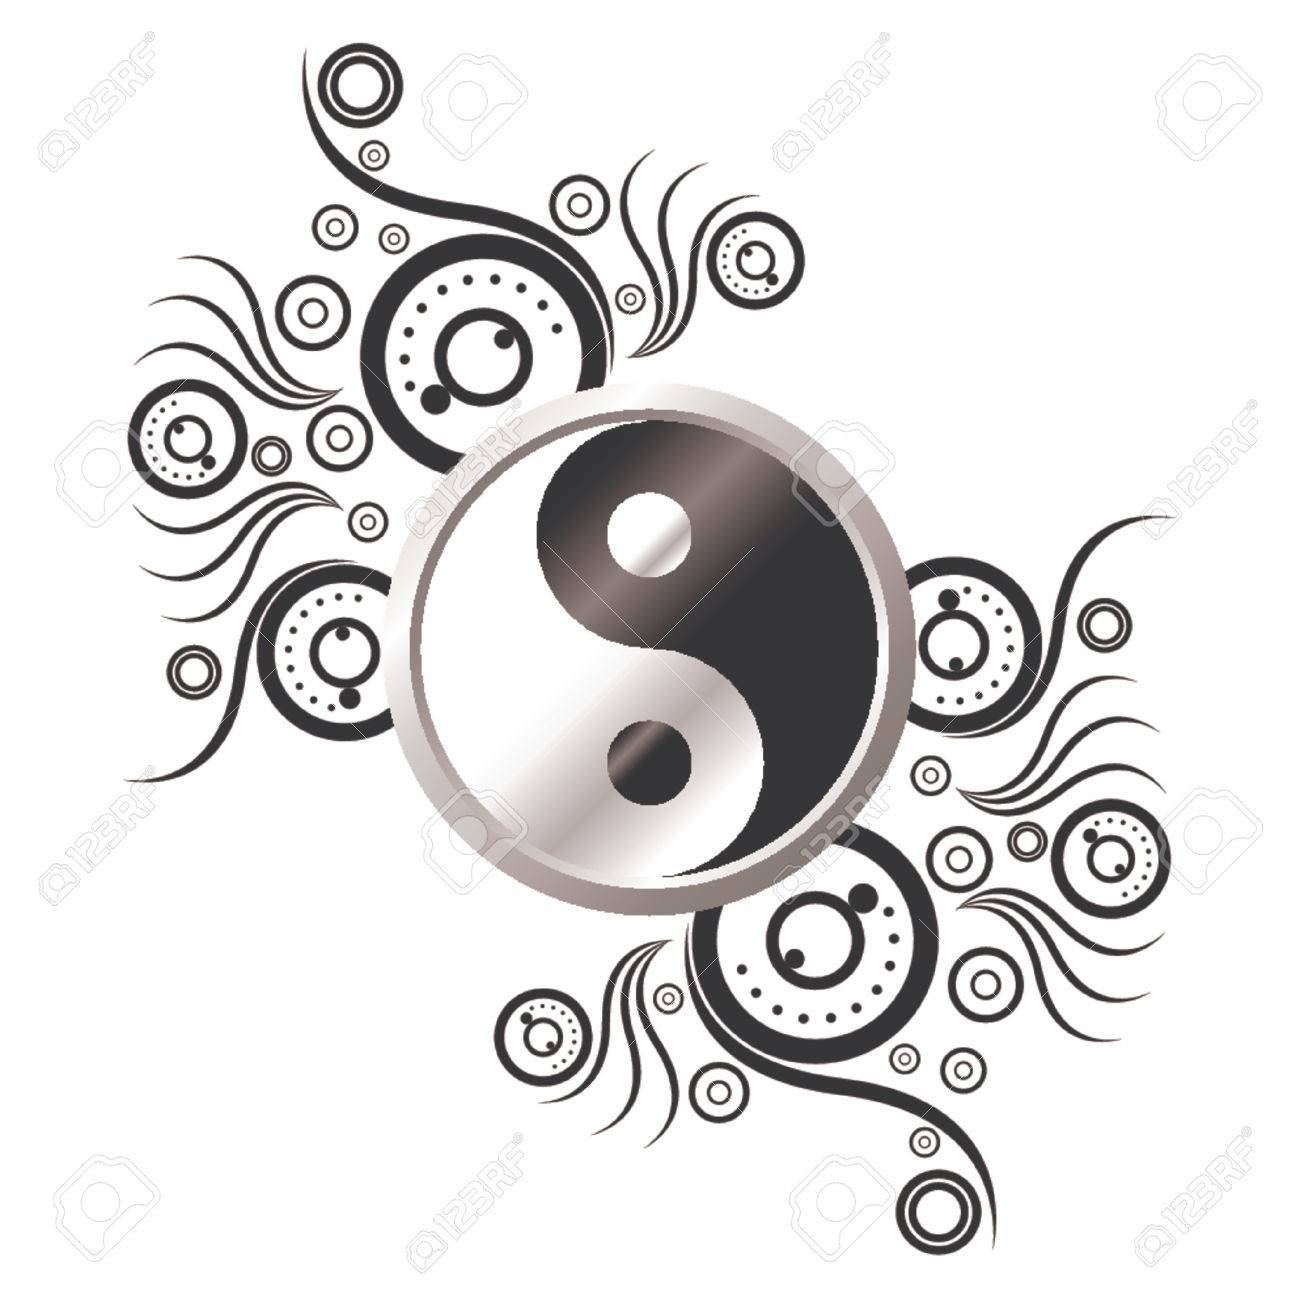 Yin and Yang symbol ornamented with abstract pattern over white background - 1326242